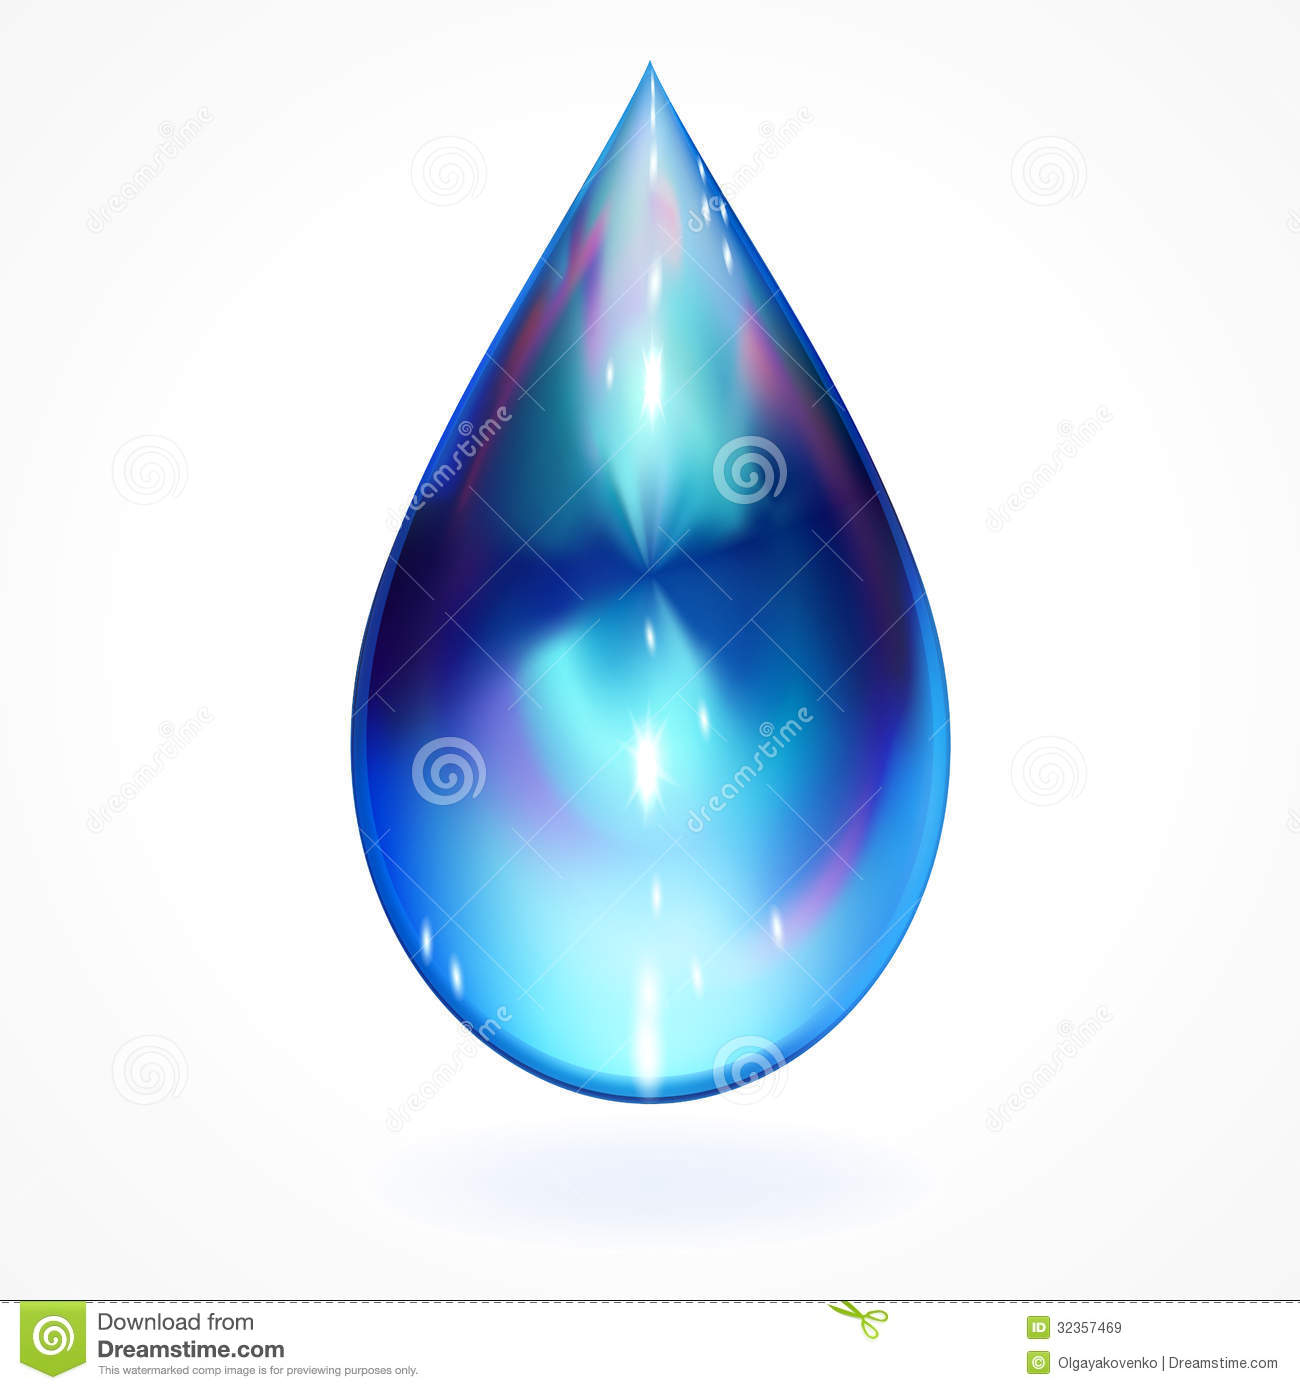 Drop Design Water Drop Design Element Royalty Free Stock Images